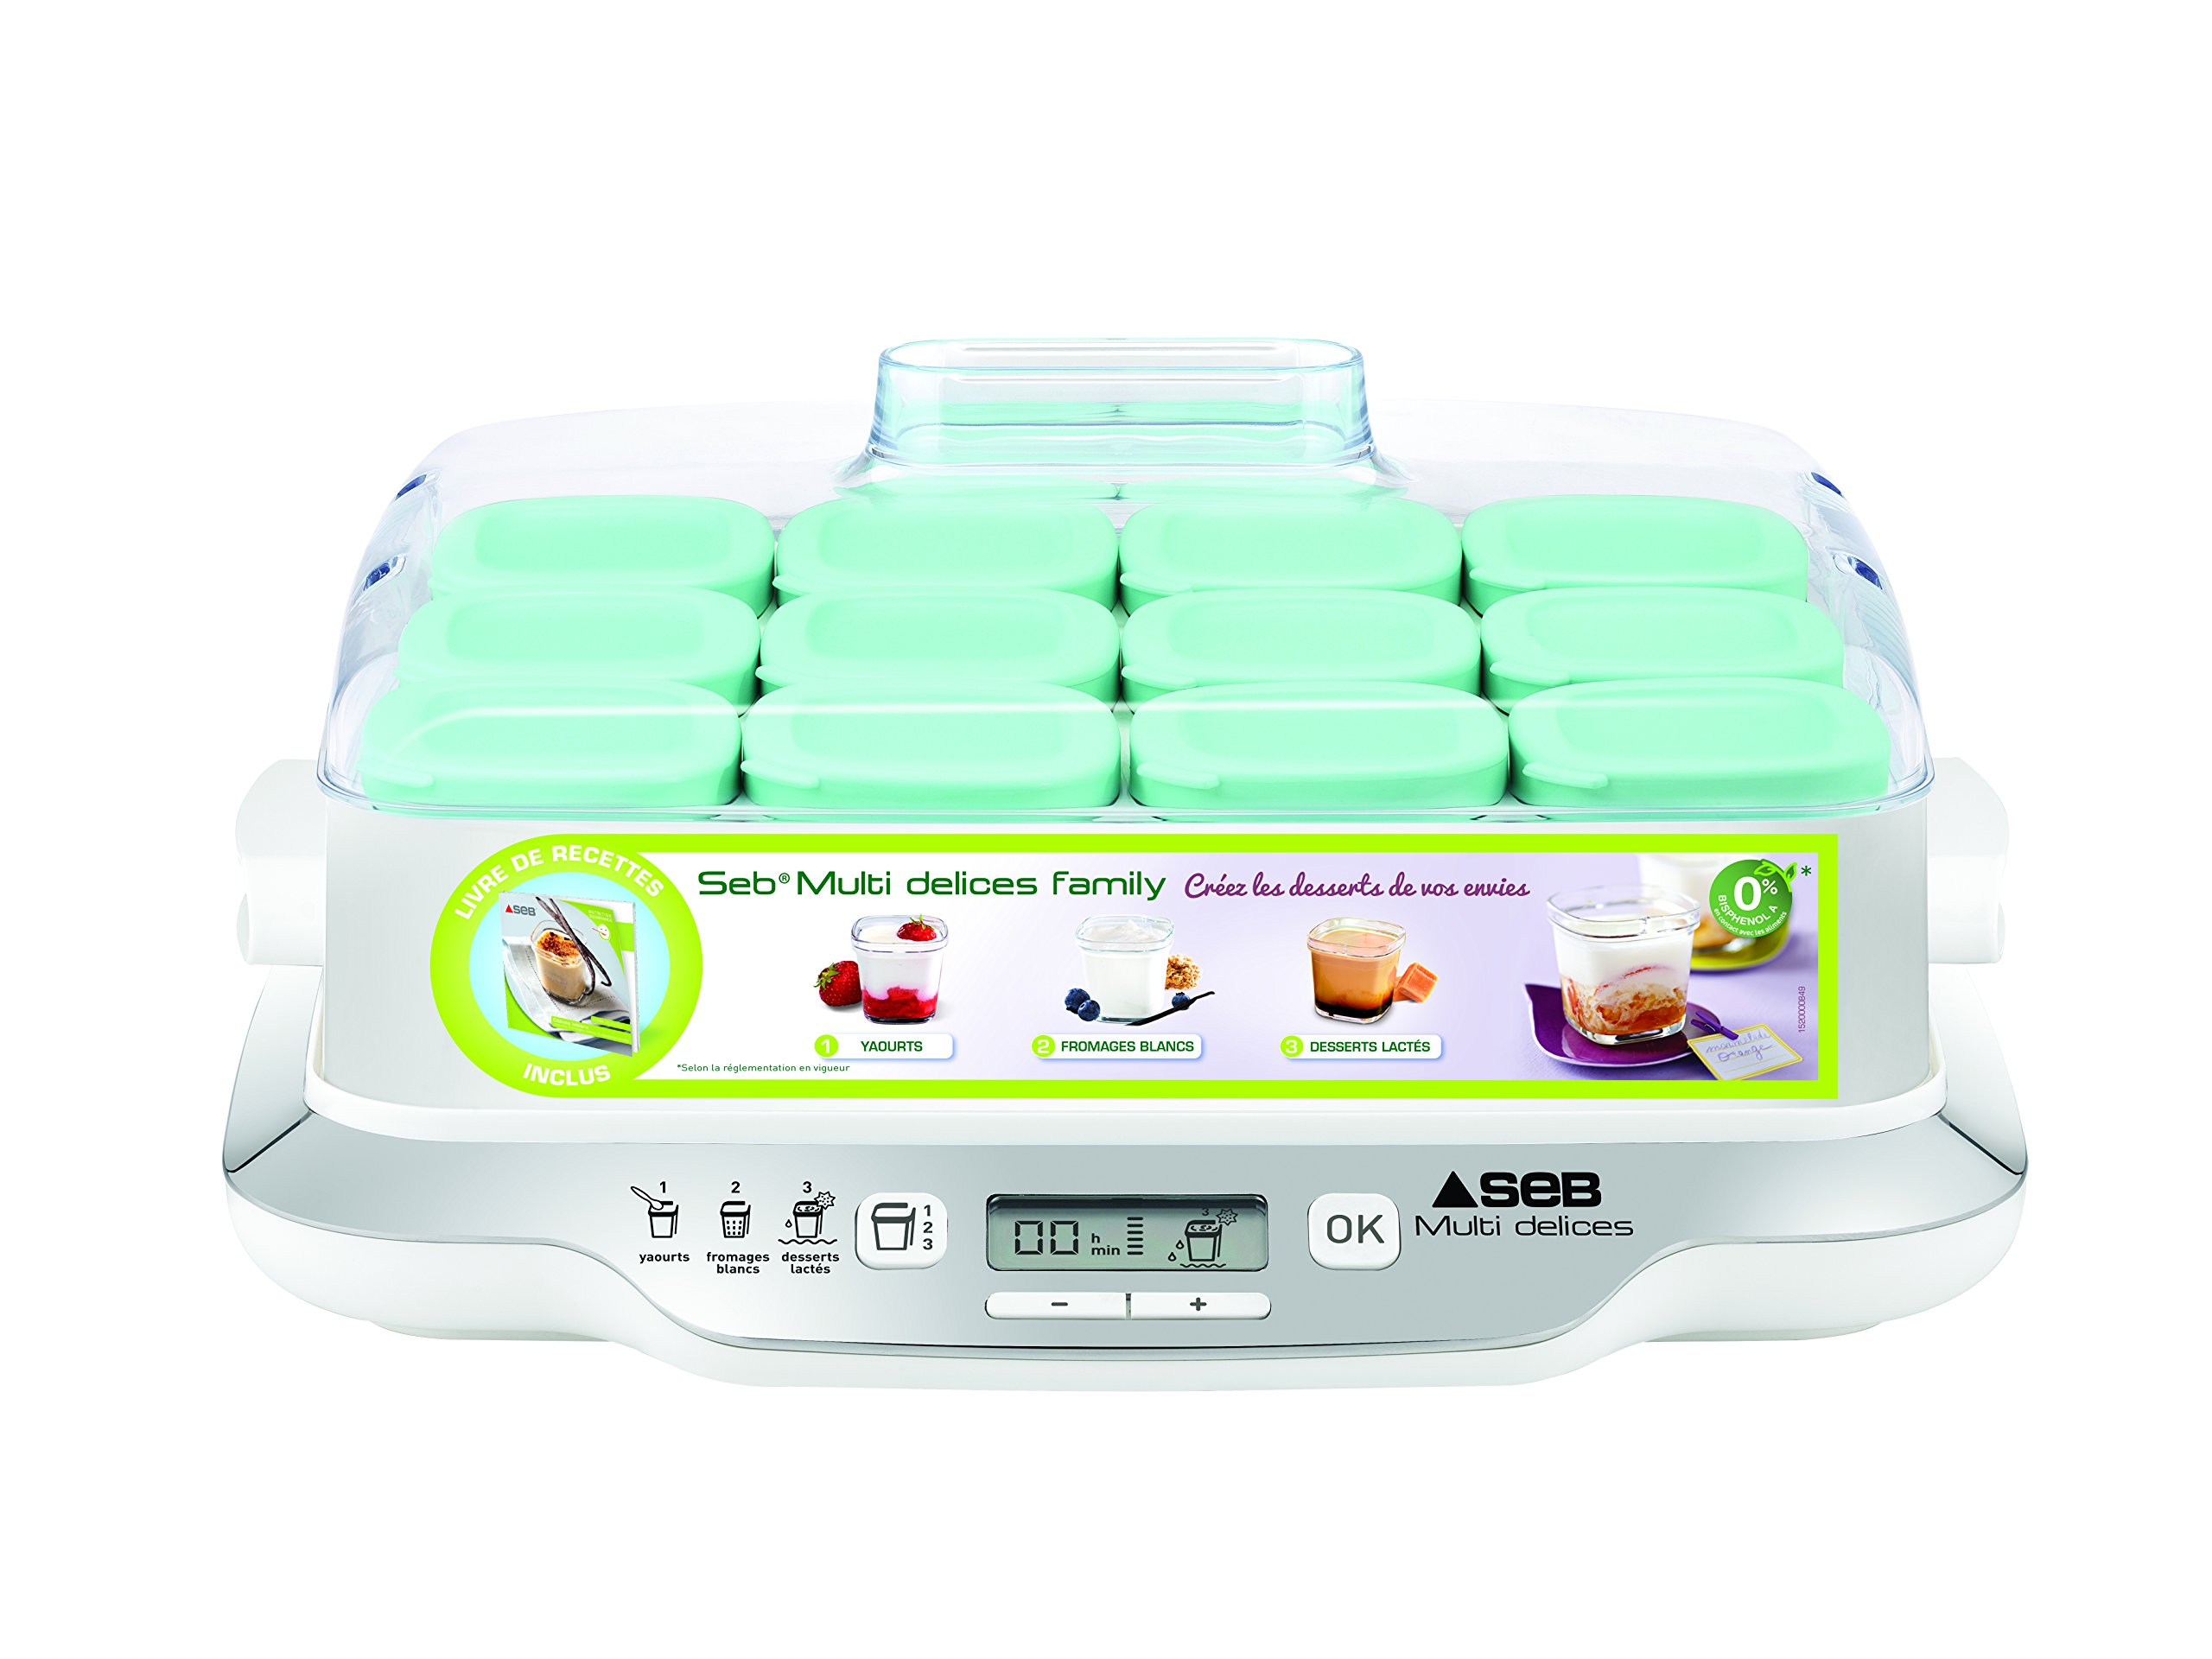 Vasetti Vetro Amazon Seb Yg6581fr Family Multidélices Yogurtiera Con 12